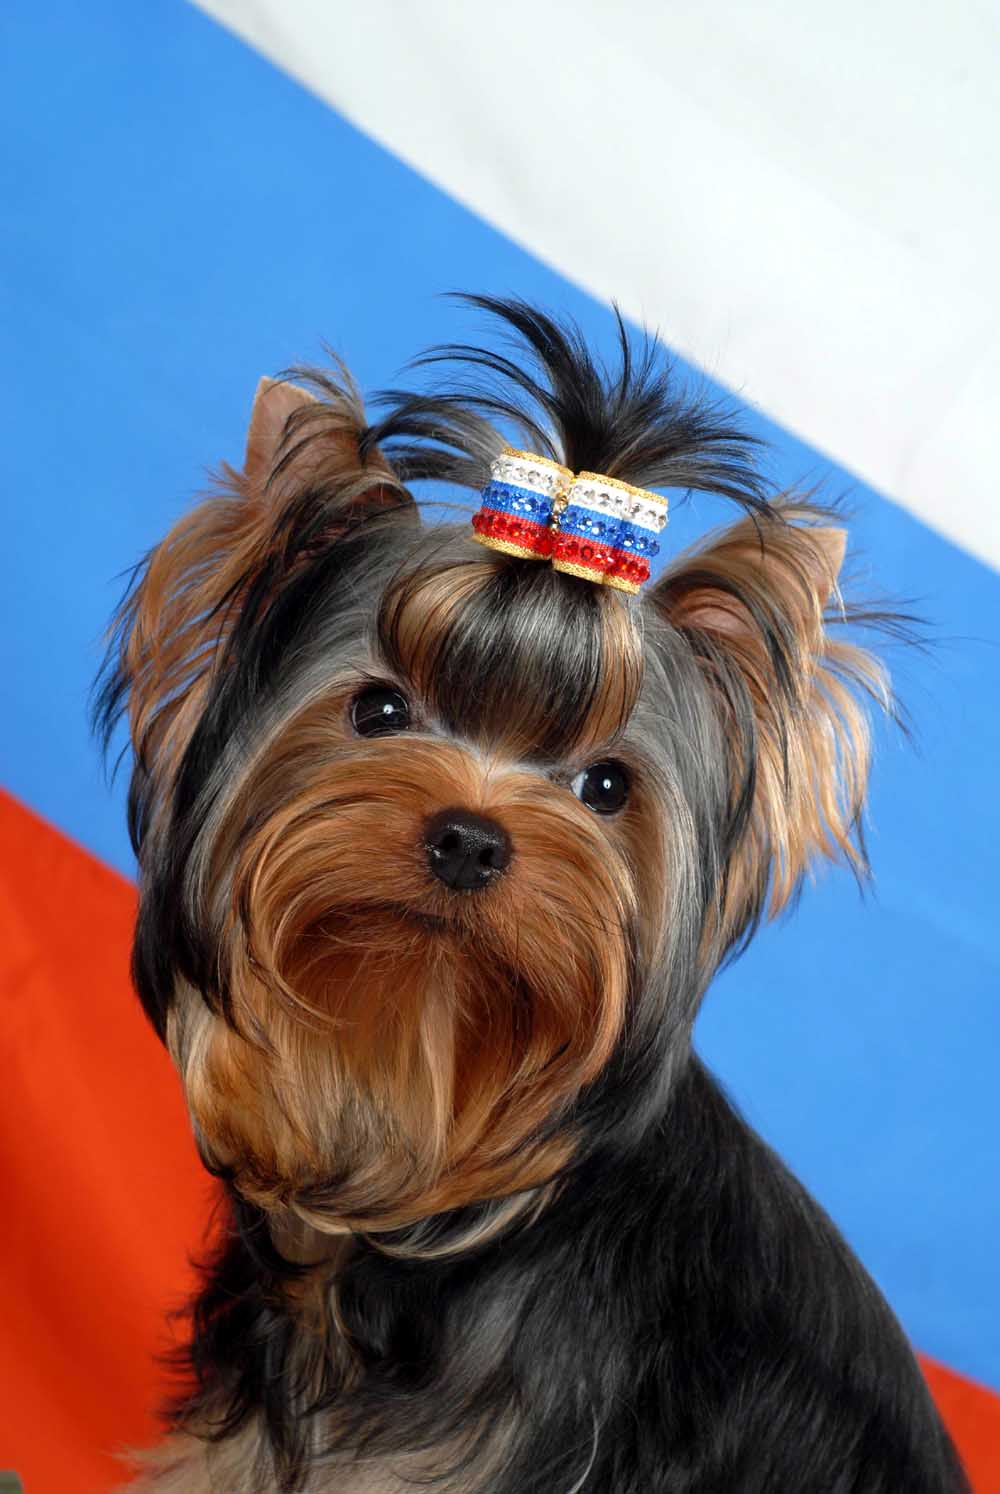 Yorkshire Terrier Puppies for Sale - Doggies